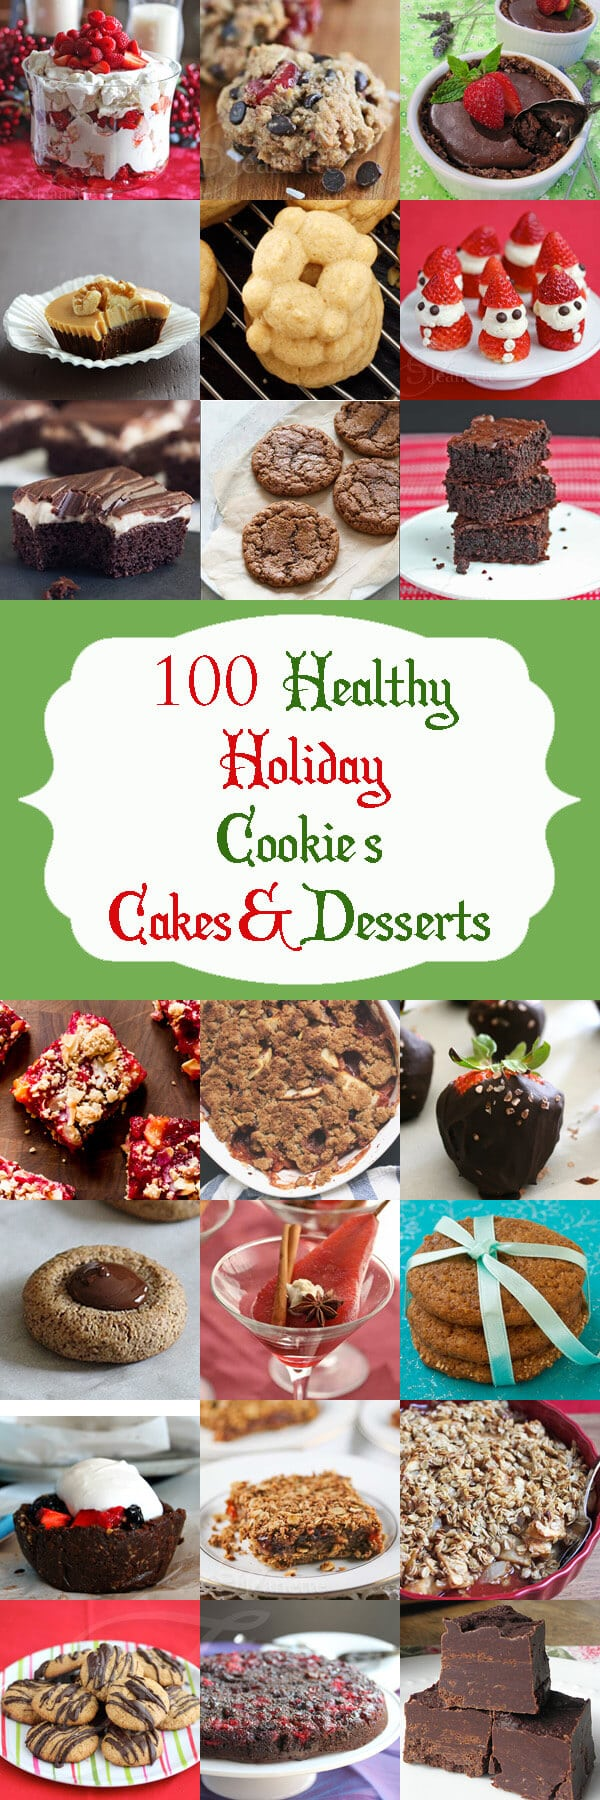 100 Healthy Christmas and Holiday Cookies, Cakes & Desserts - bookmark or pin this post to refer to for all your holiday treats